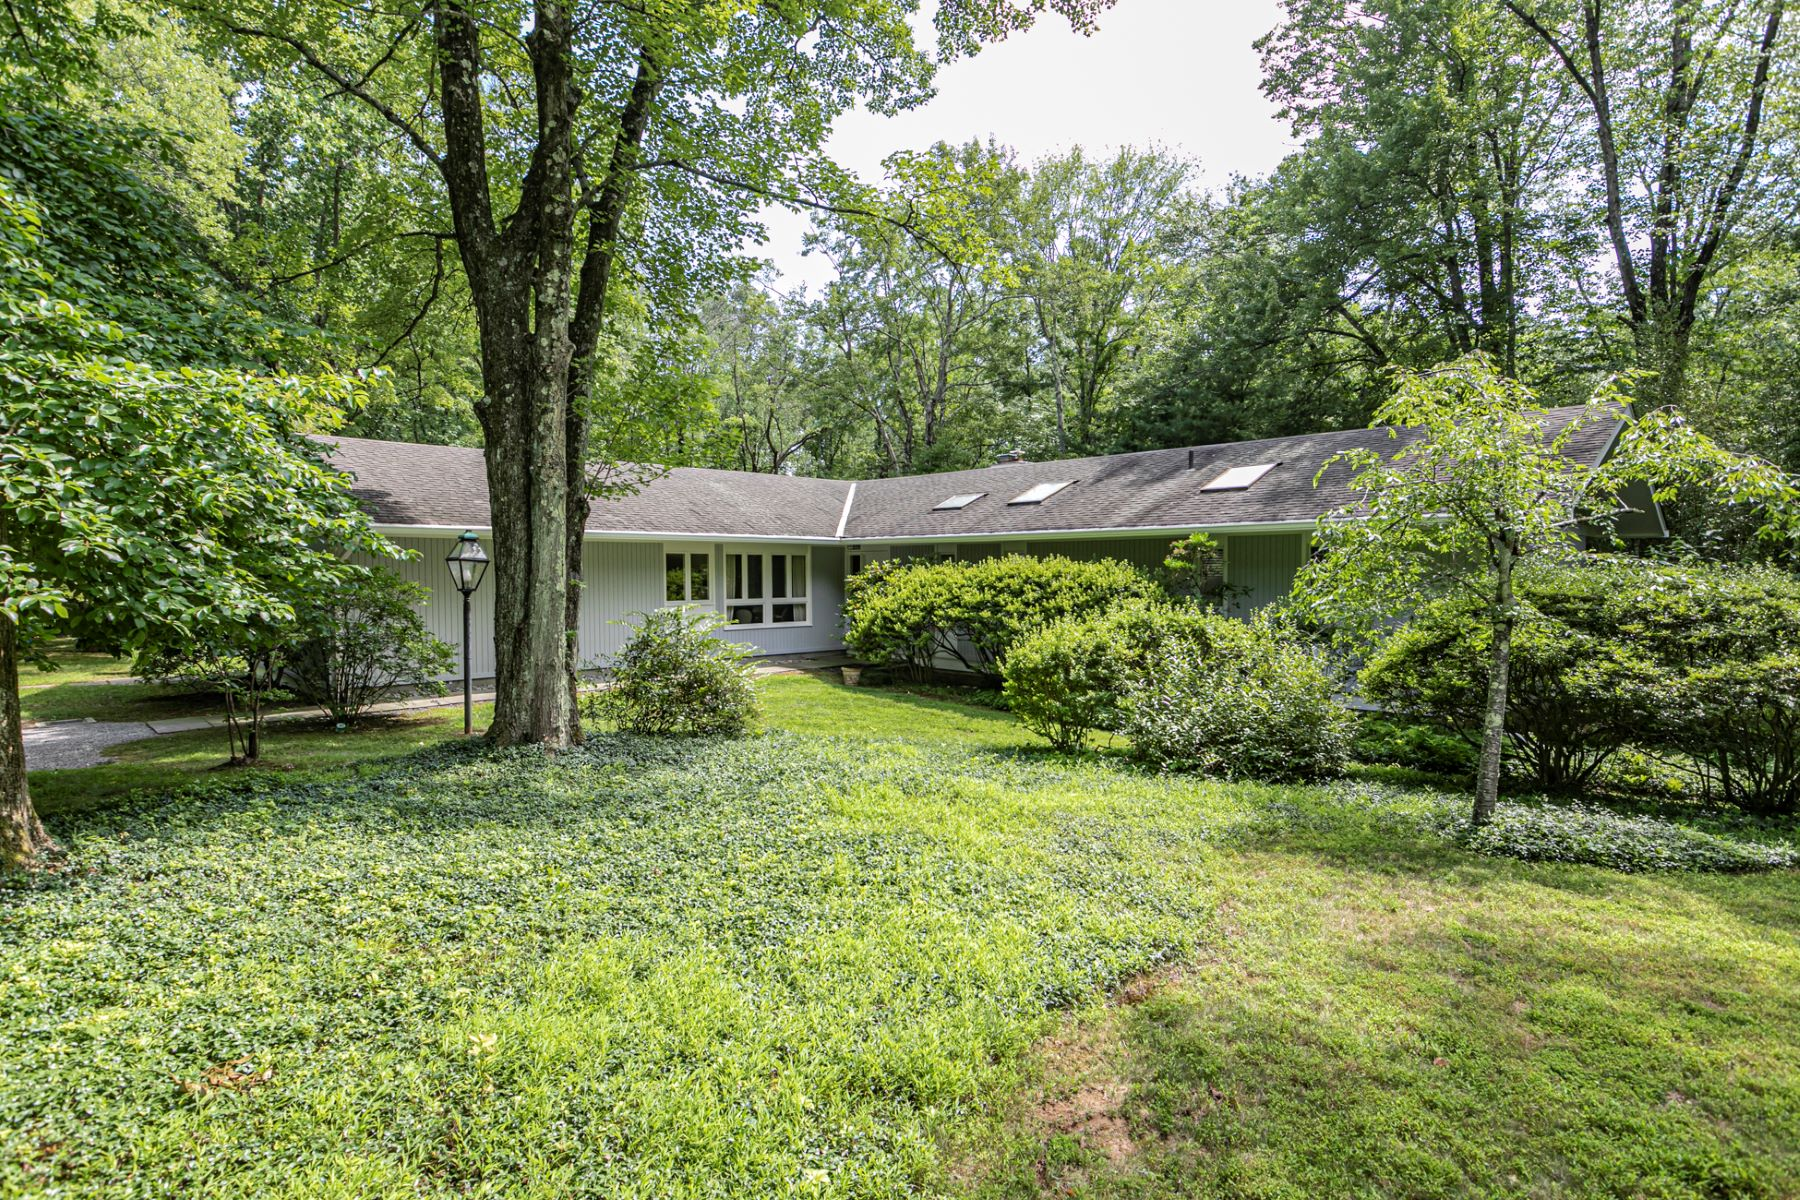 Property for Sale at Paradise on Princeton Ridge 292 Ridgeview Road, Princeton, New Jersey 08540 United States